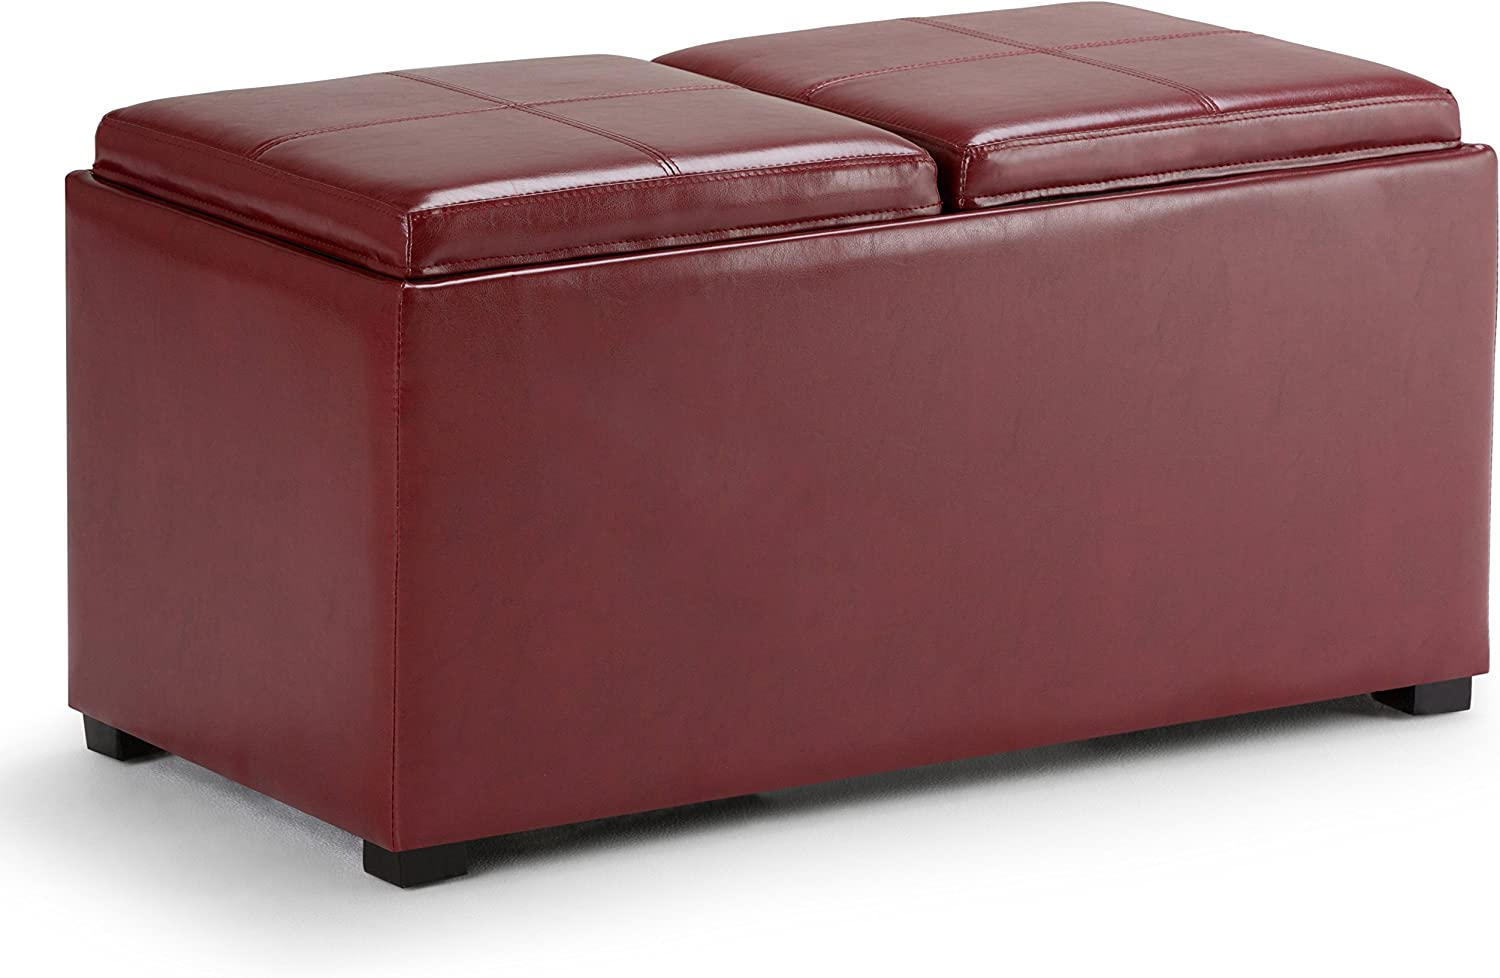 Simpli Home AY-F-15B-RRD Avalon 35 inch Wide ContemporaryStorage Ottoman in Radicchio Red Faux Leather